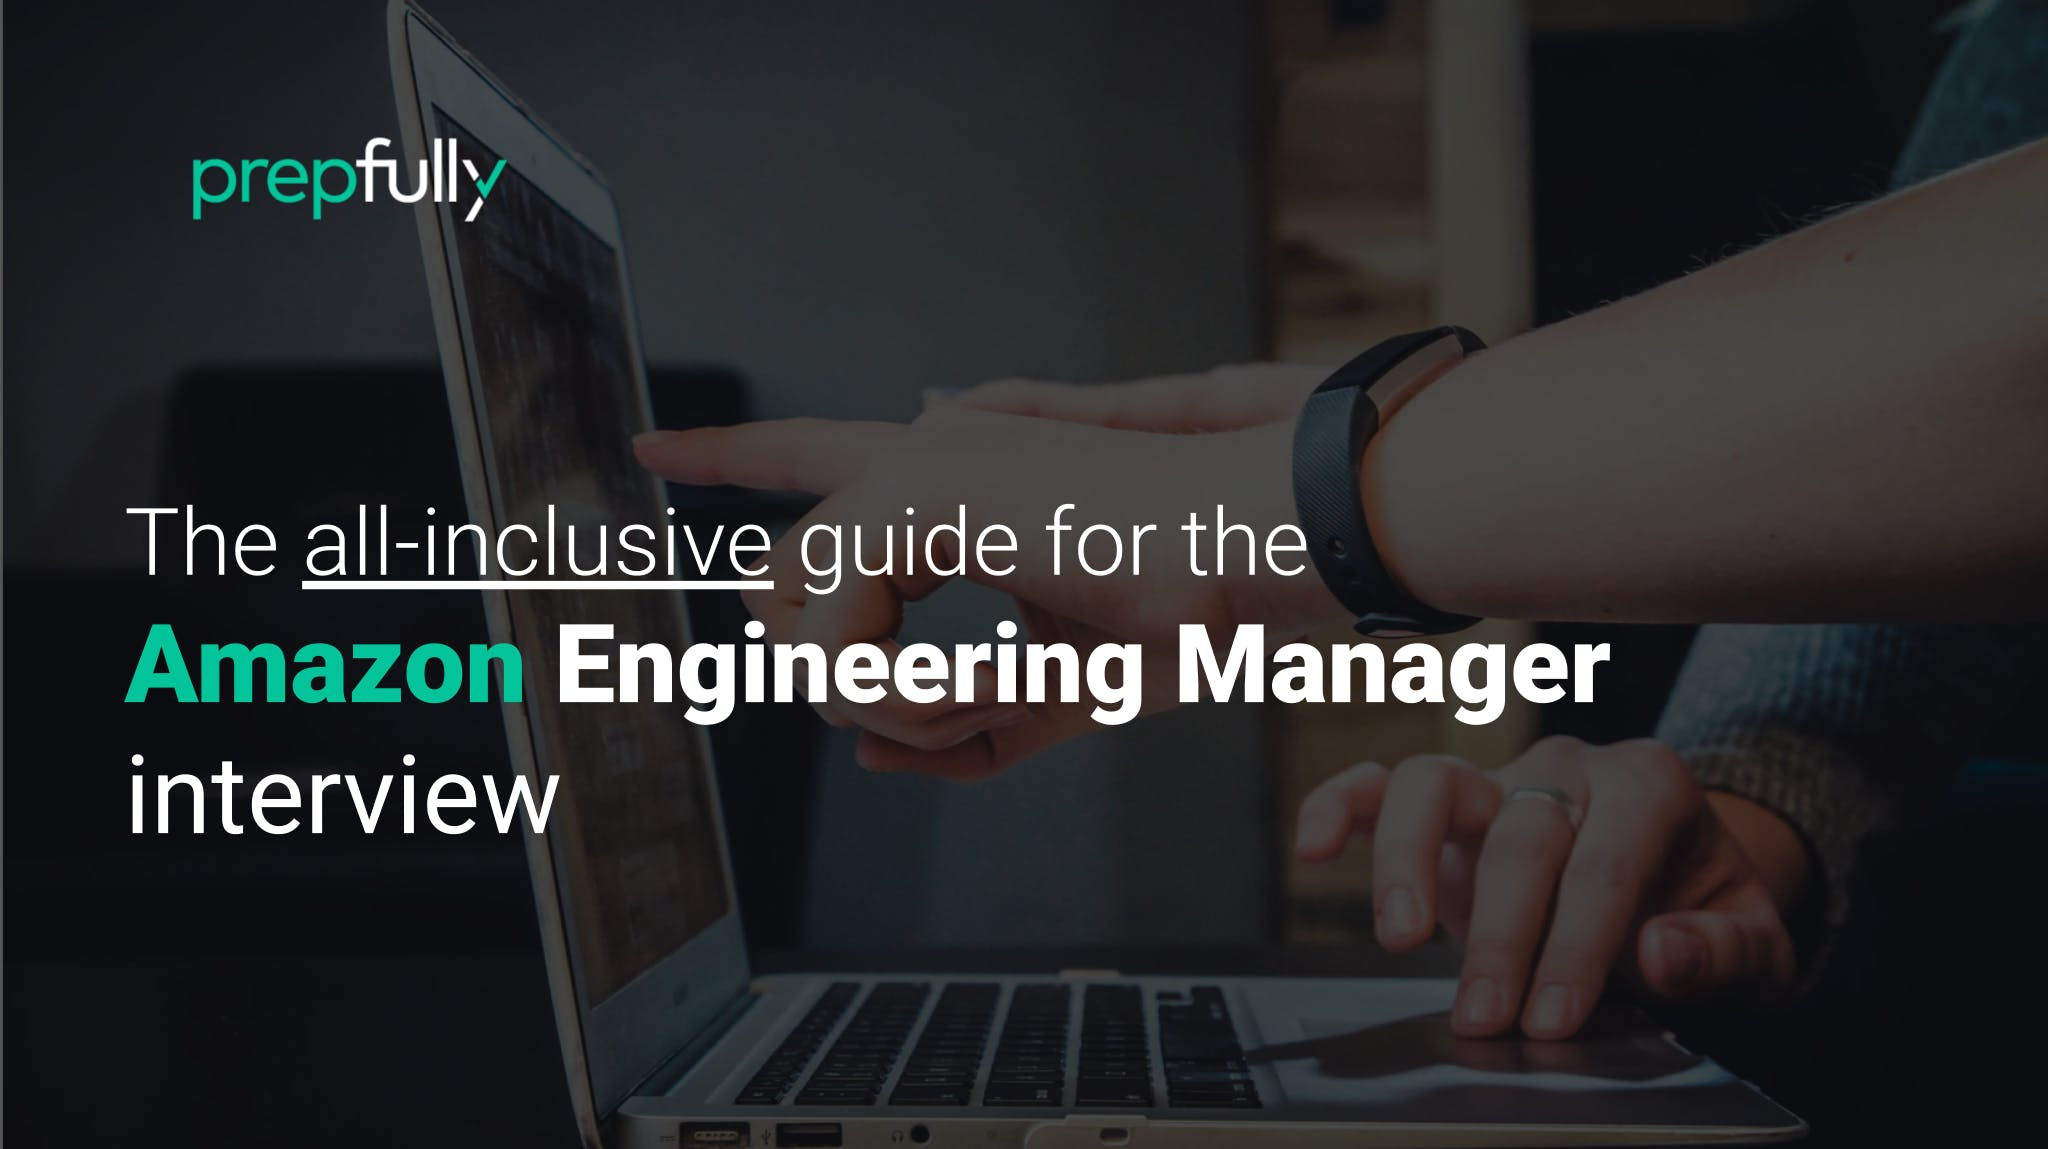 Interview guide for Amazon Engineering Manager